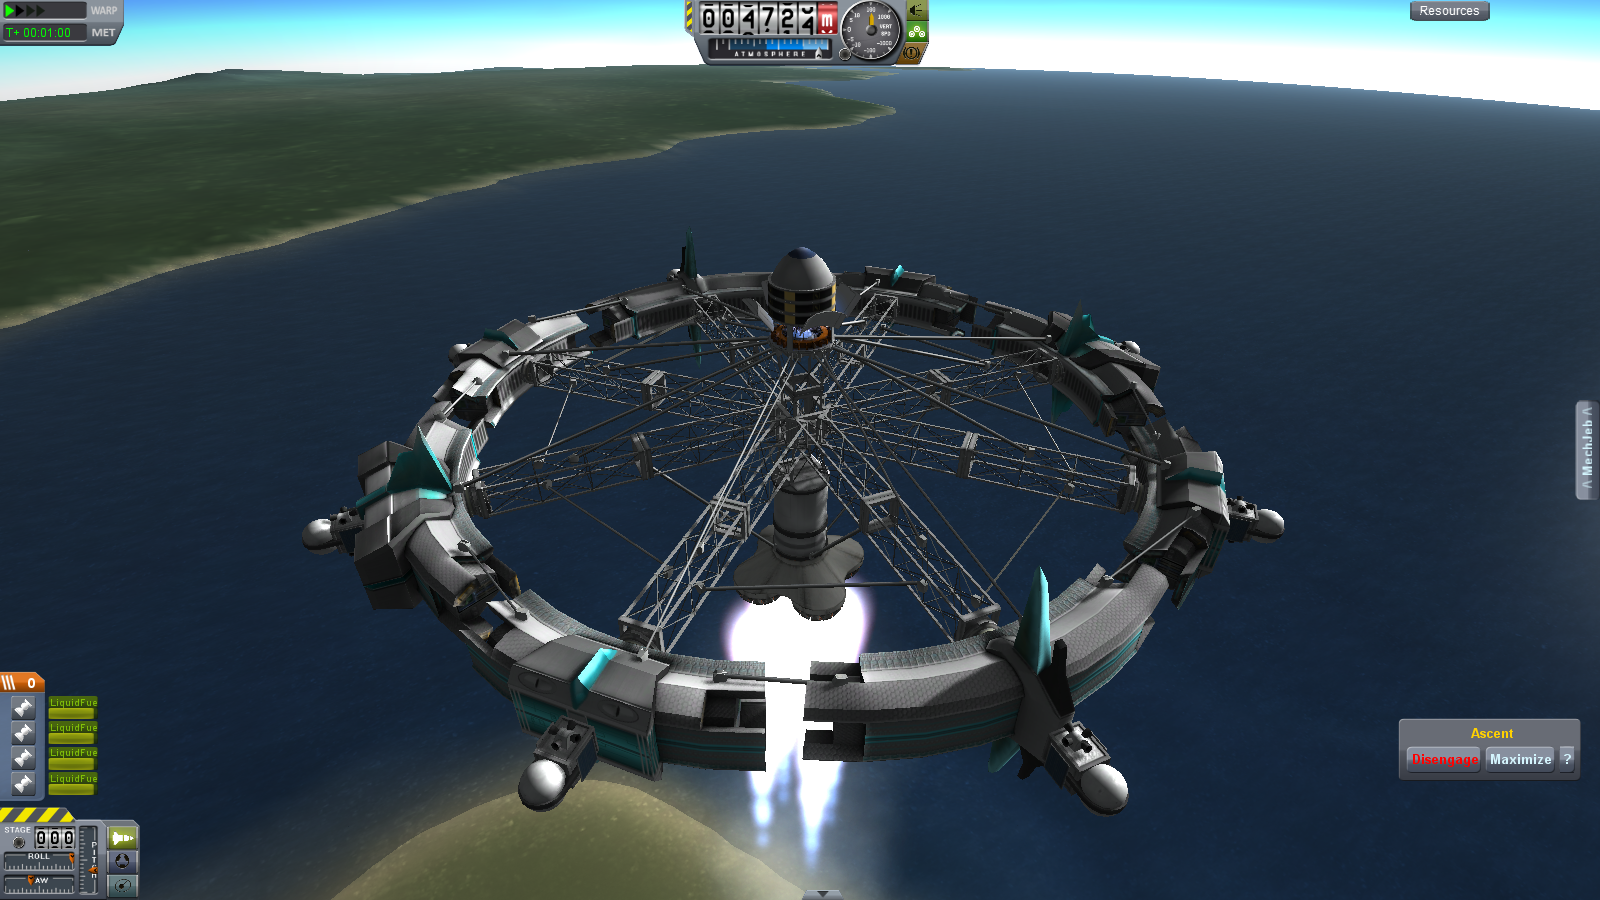 kerbal space program space station - photo #43